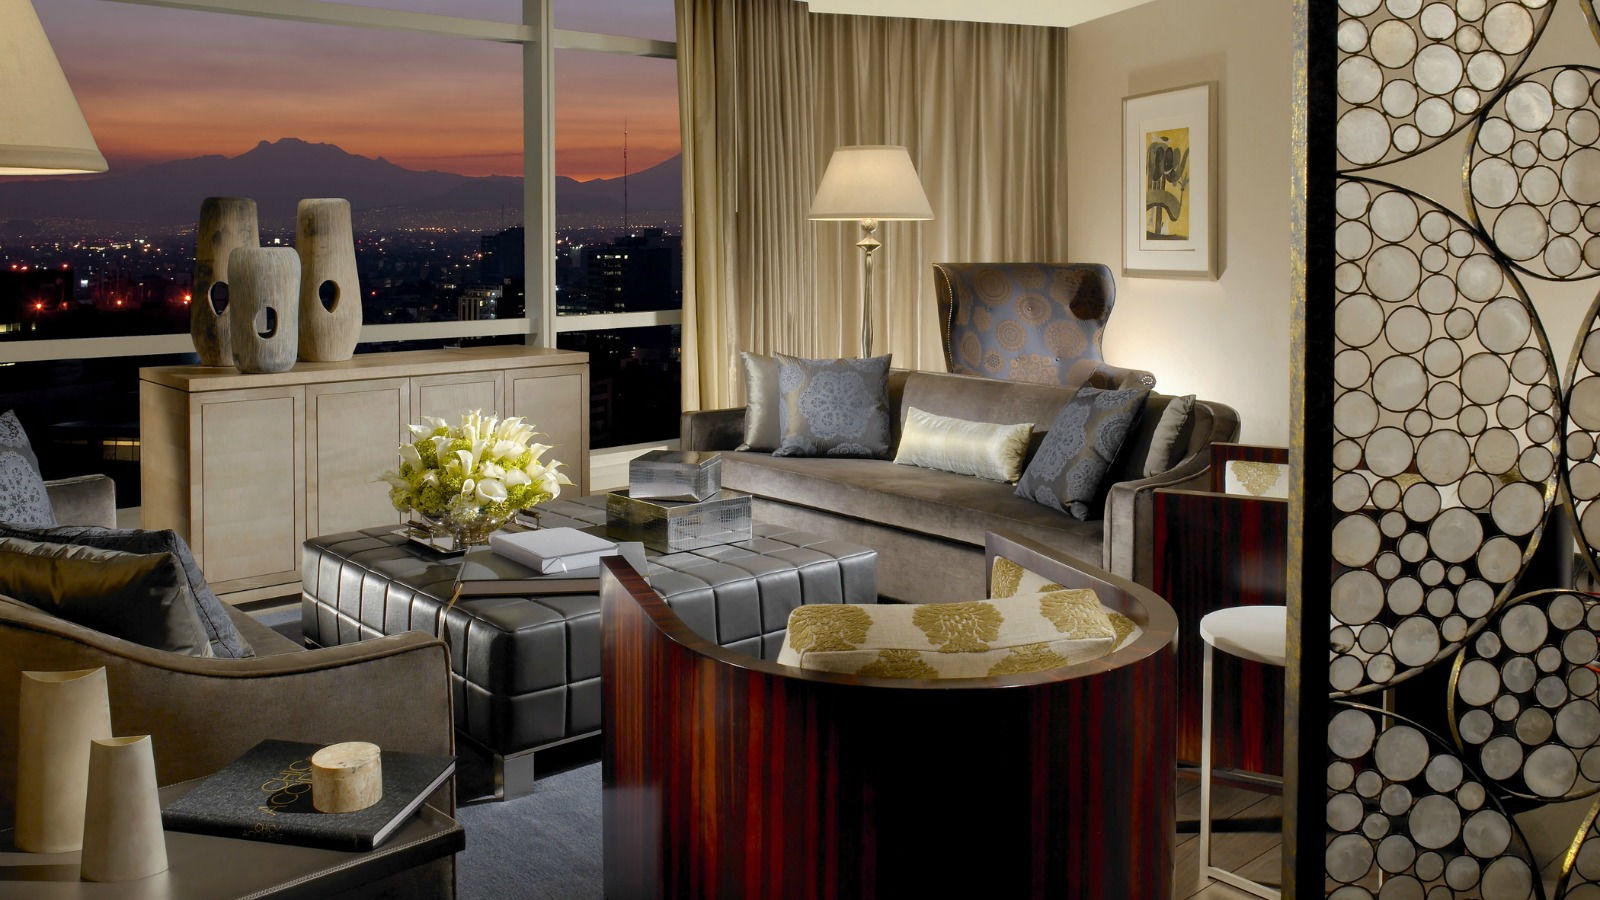 Suite St. Regis - St. Regis Mexico City